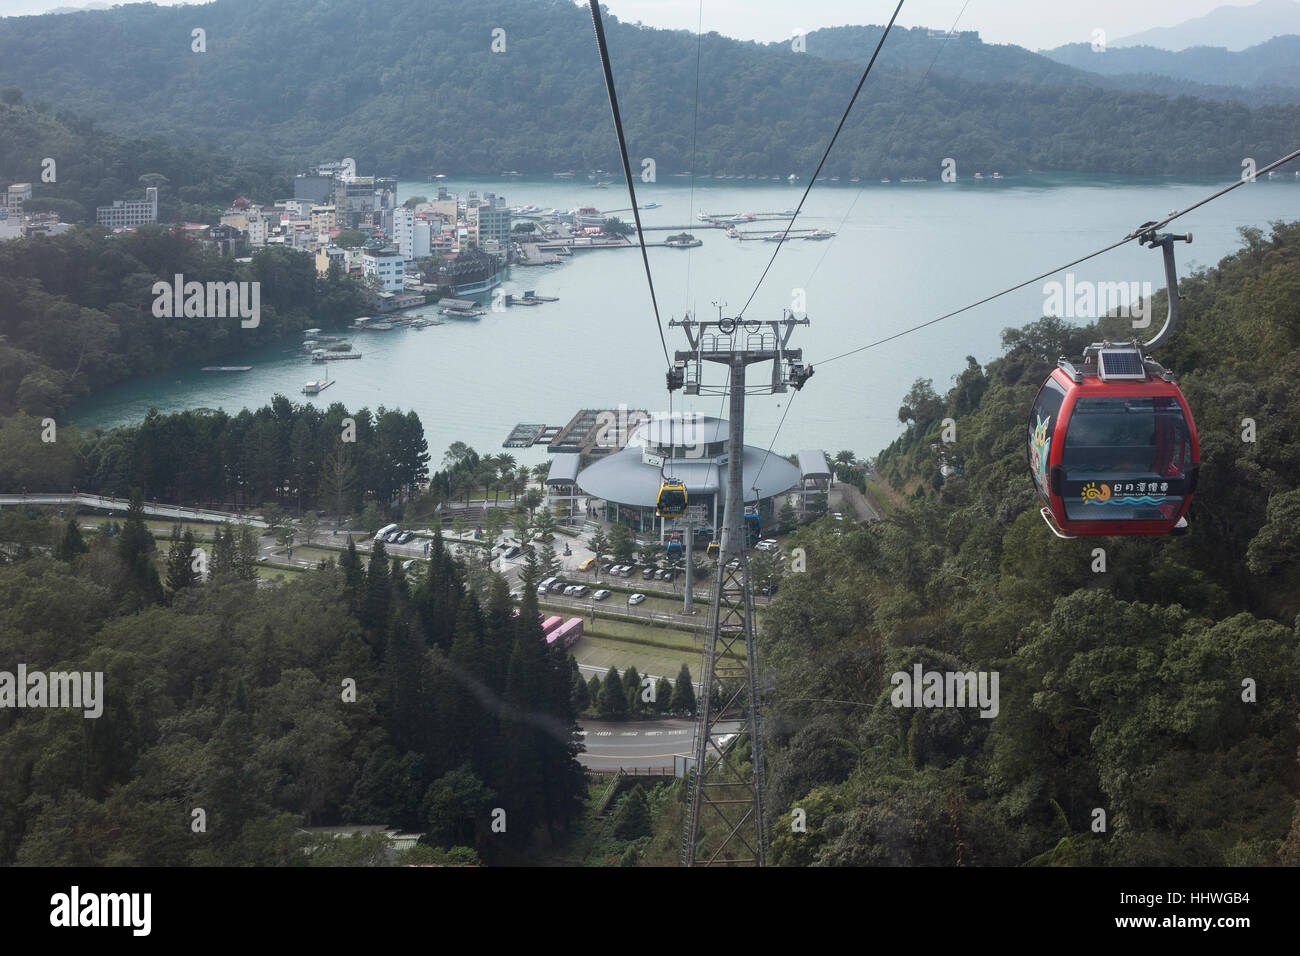 Taiwan, Sun Moon lake, Ita Thao from cable car - Stock Image